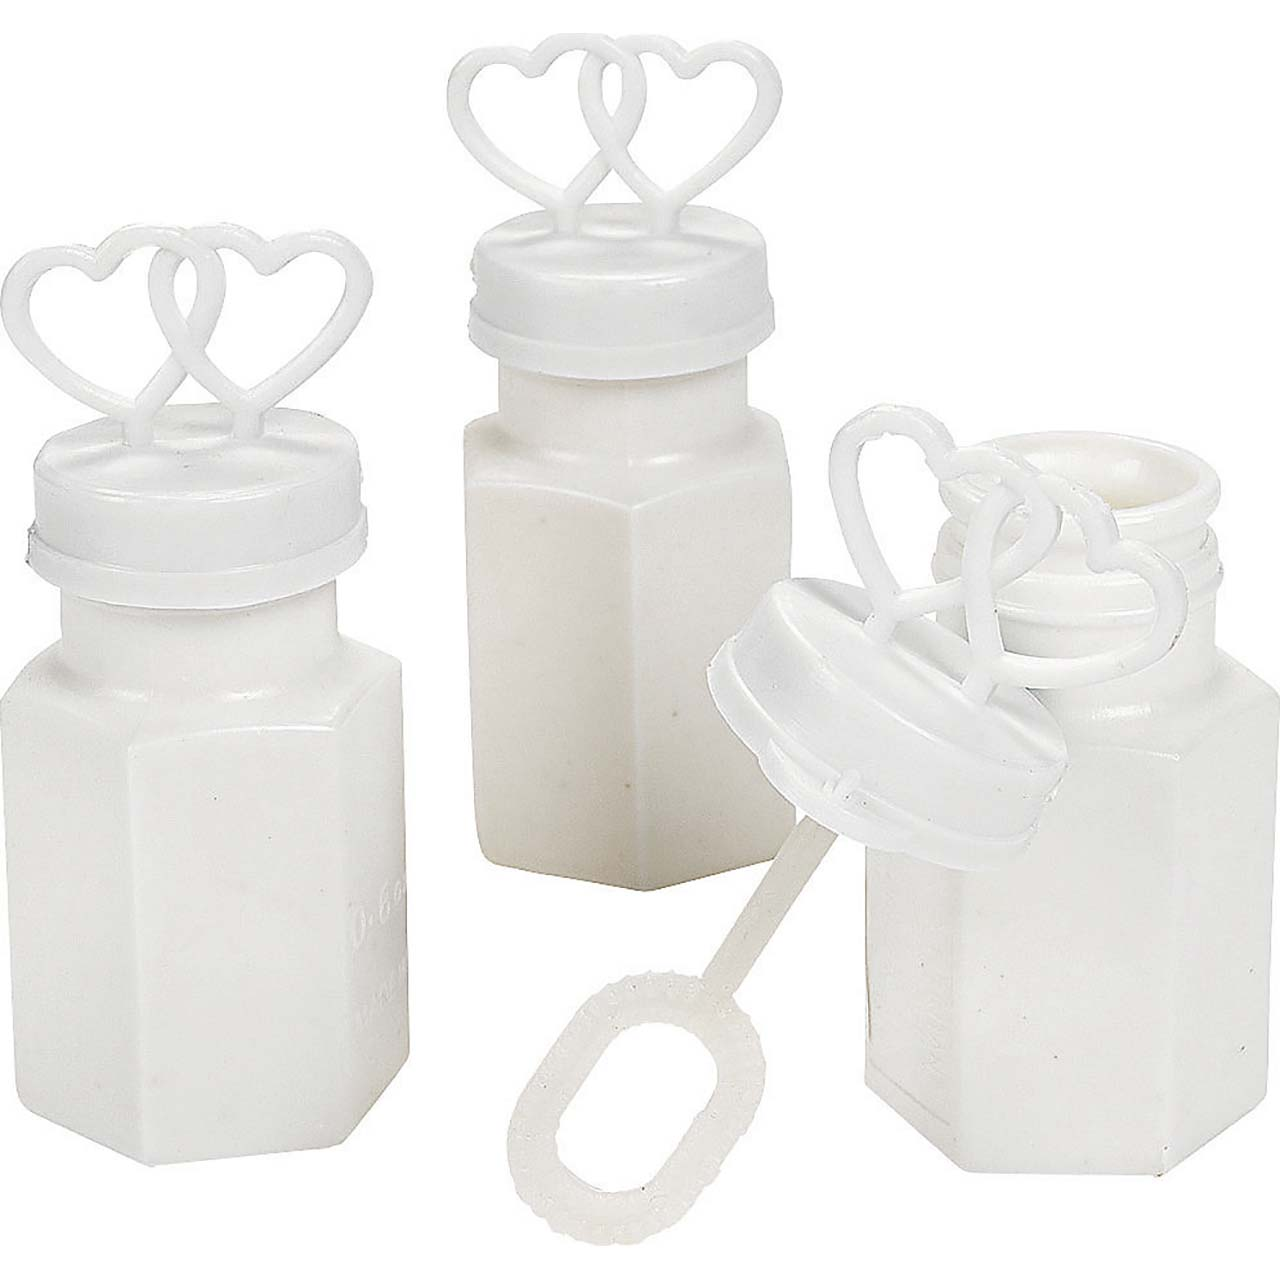 48 White Double Heart Wedding Bubbles Bridal Favors ...